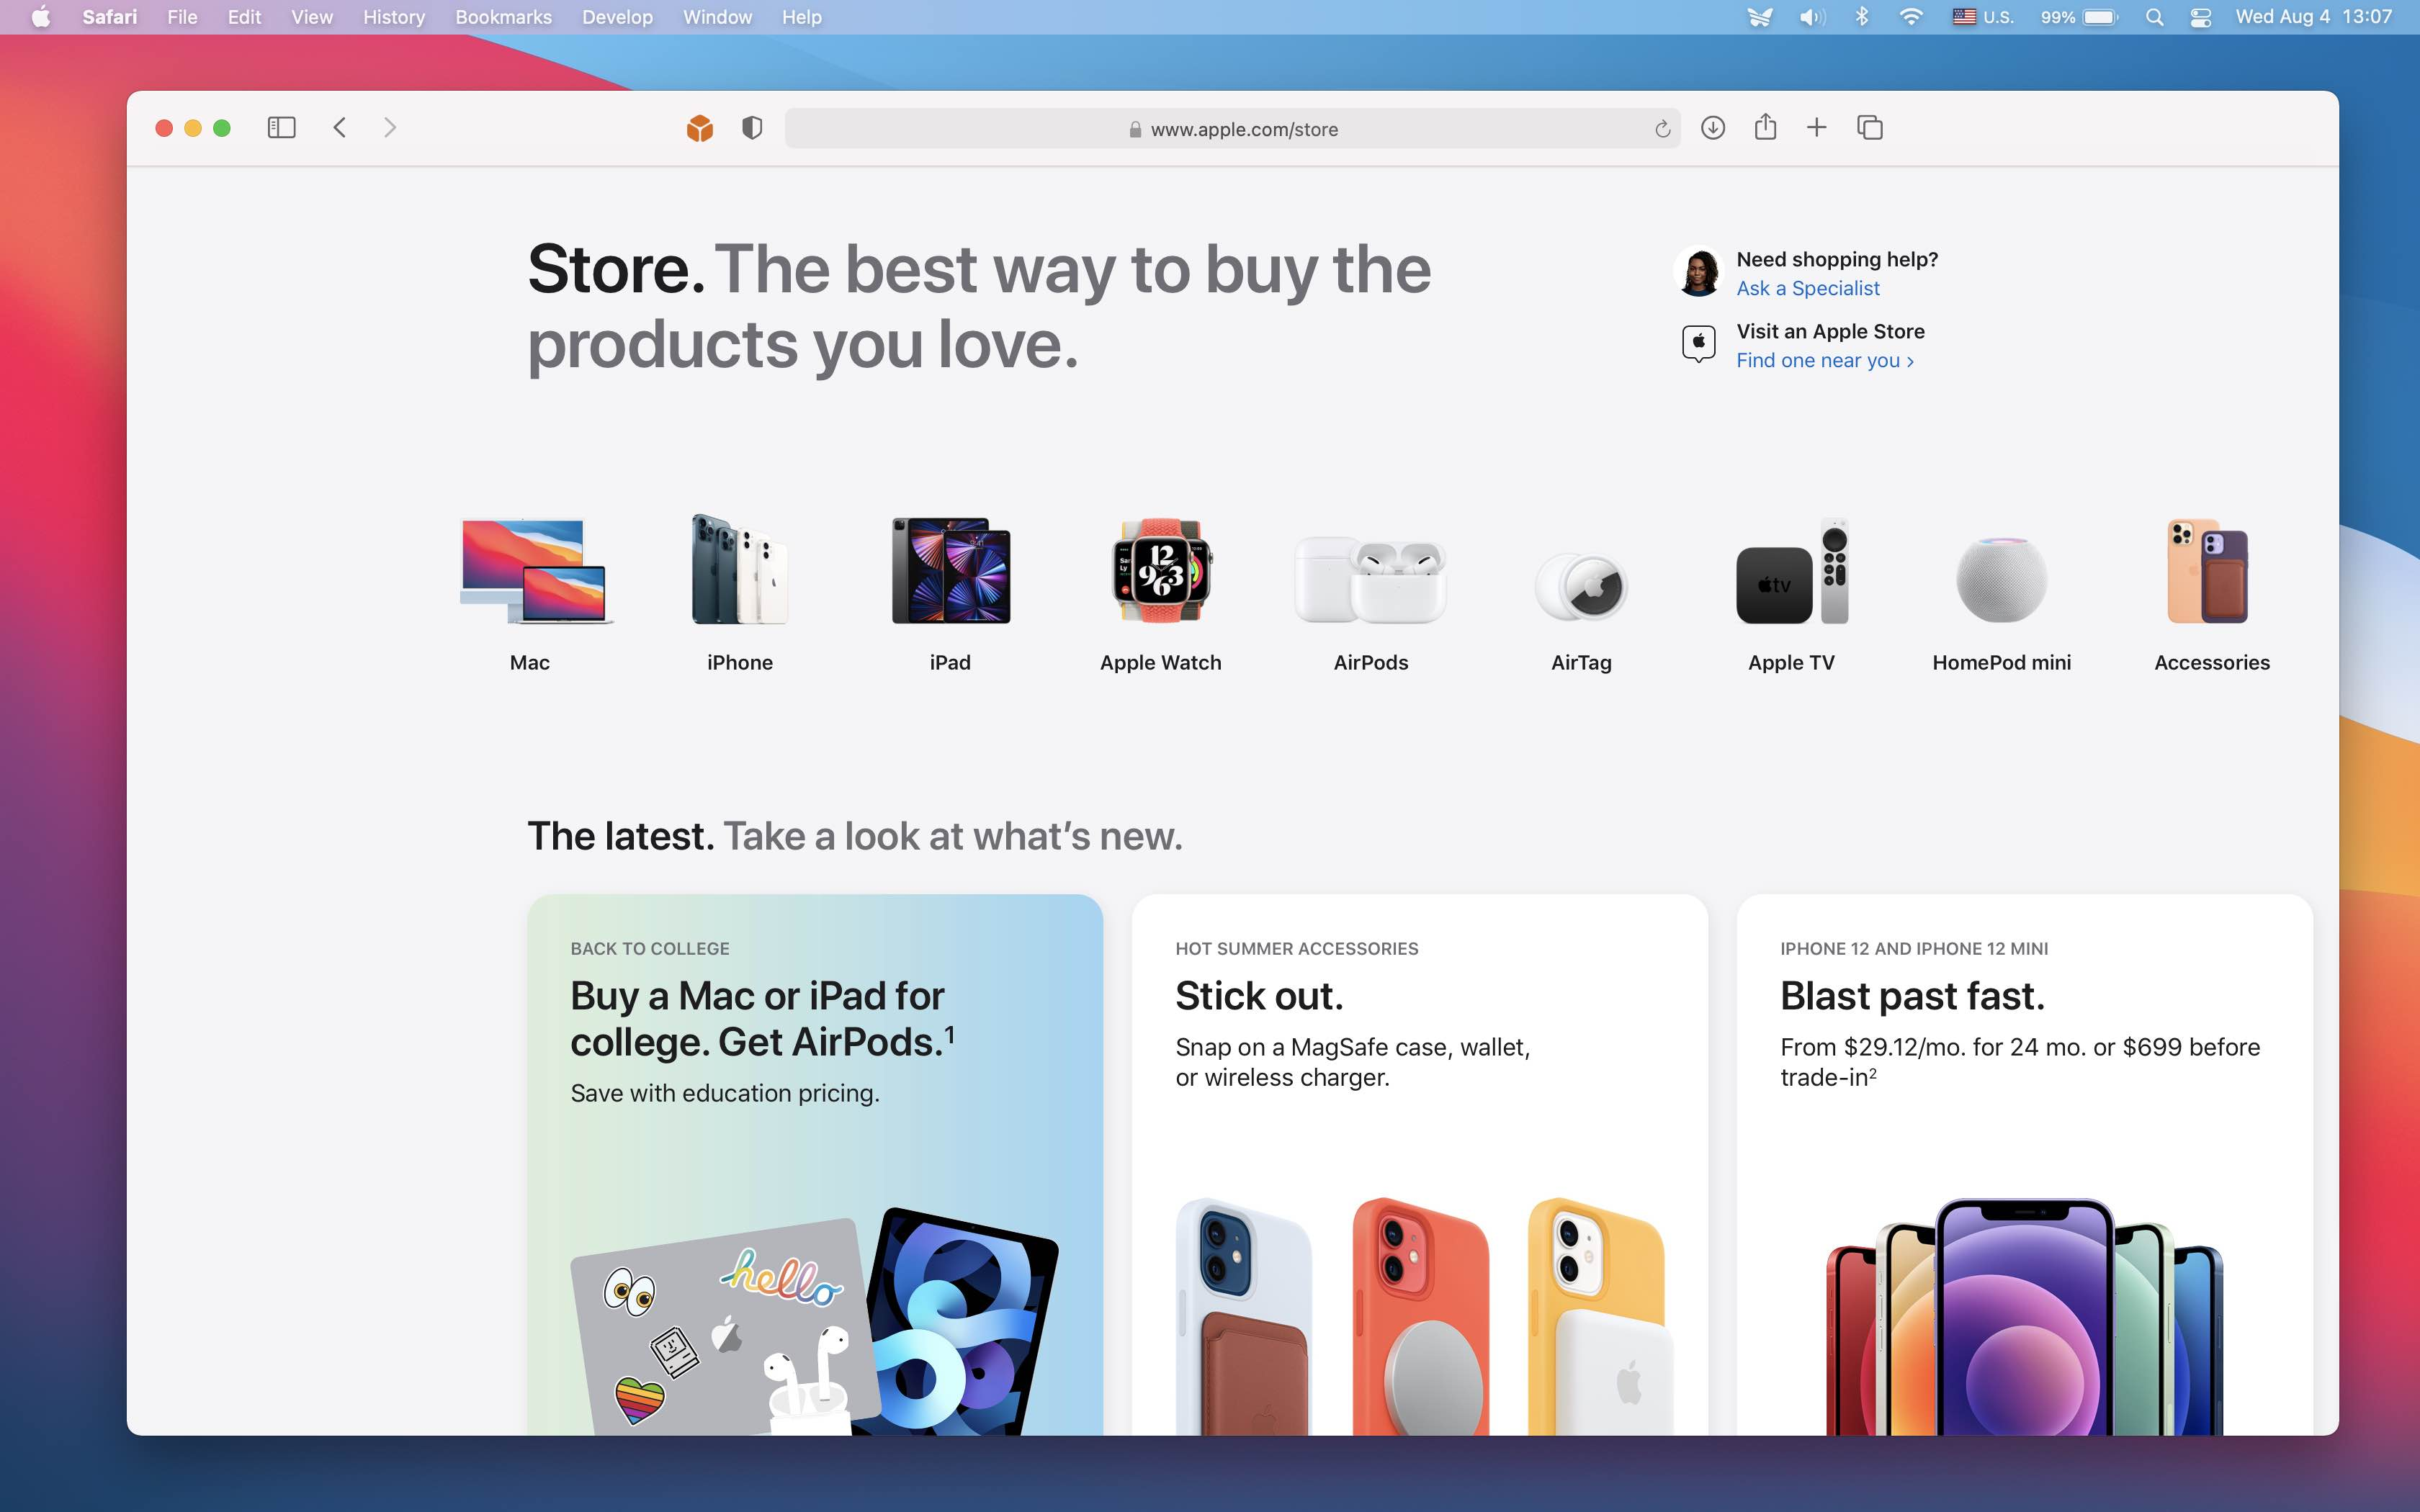 A Safari for Mac screenshot showing the redesigned Apple online store